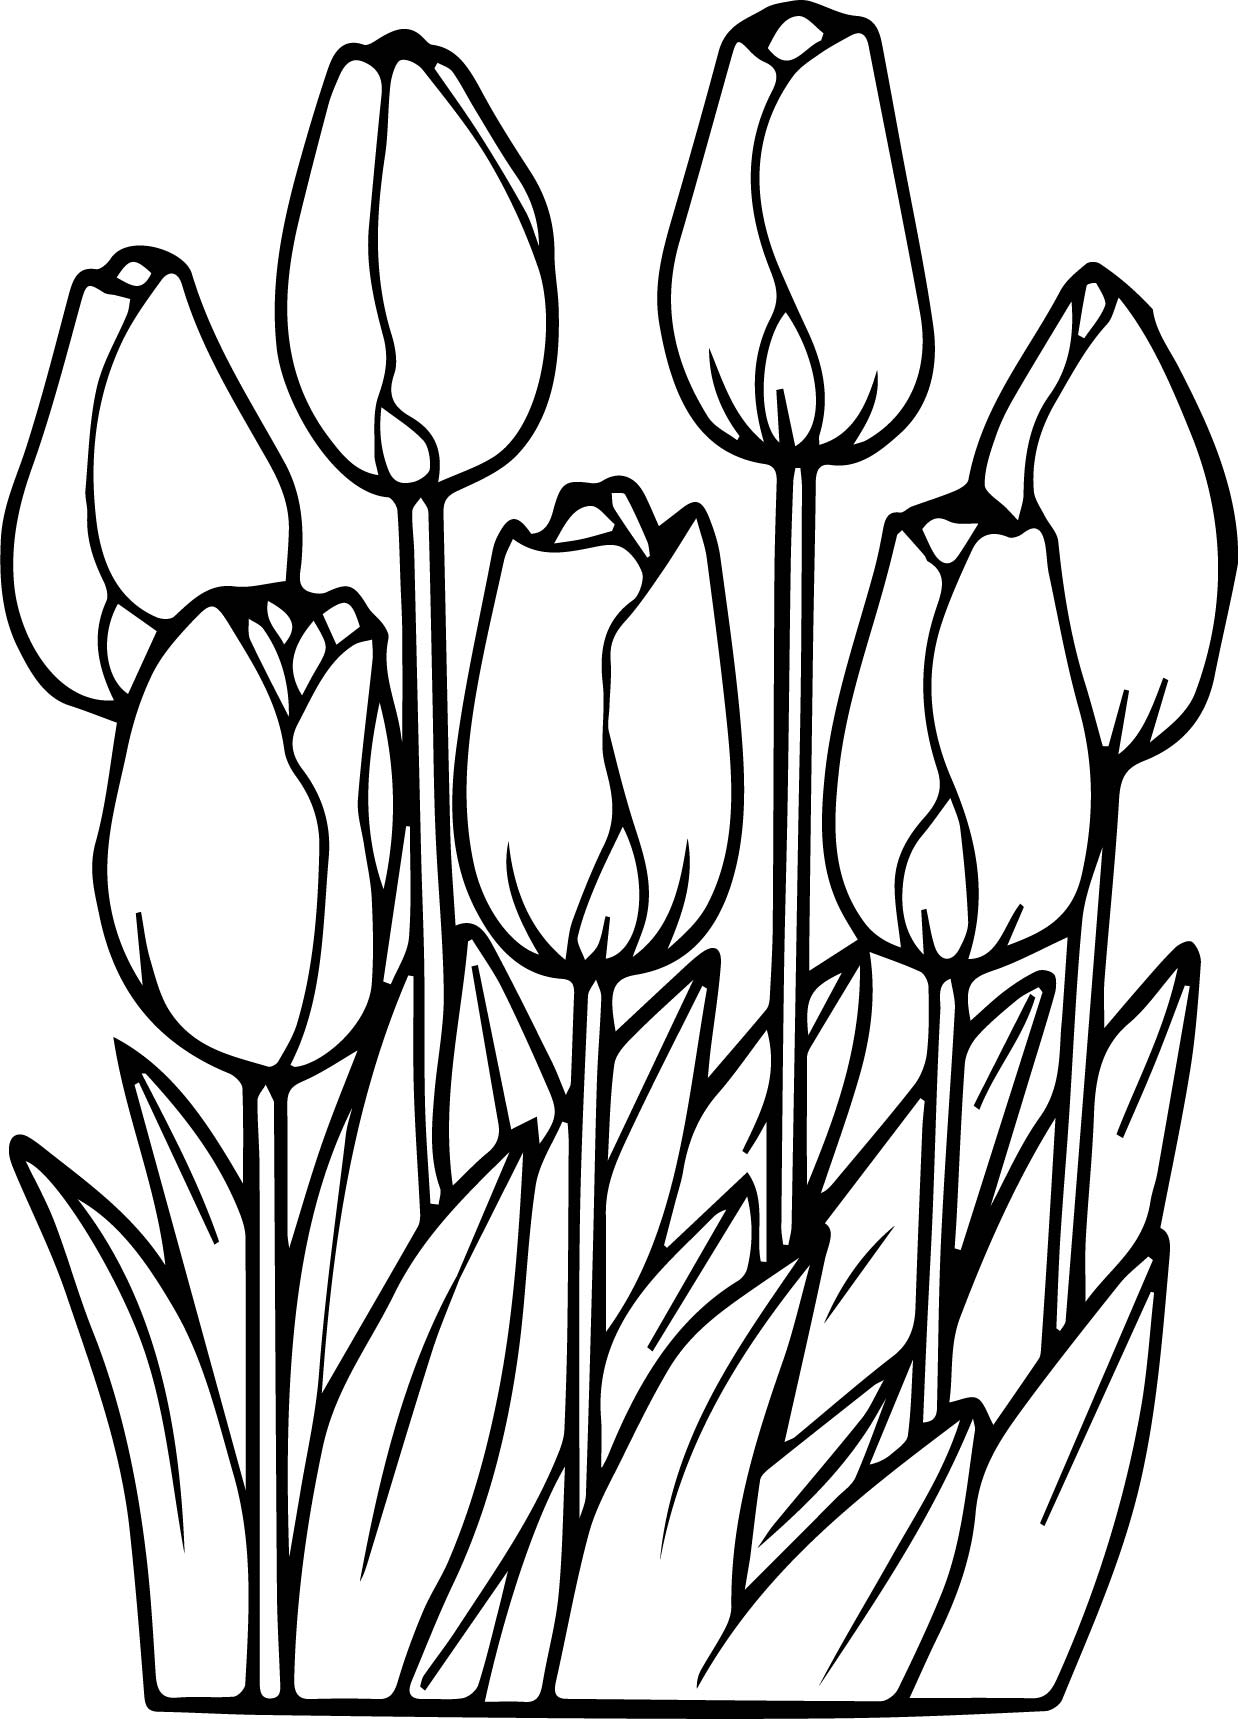 tulip colouring realistic tulip coloring sheet flower drawing drawings colouring tulip